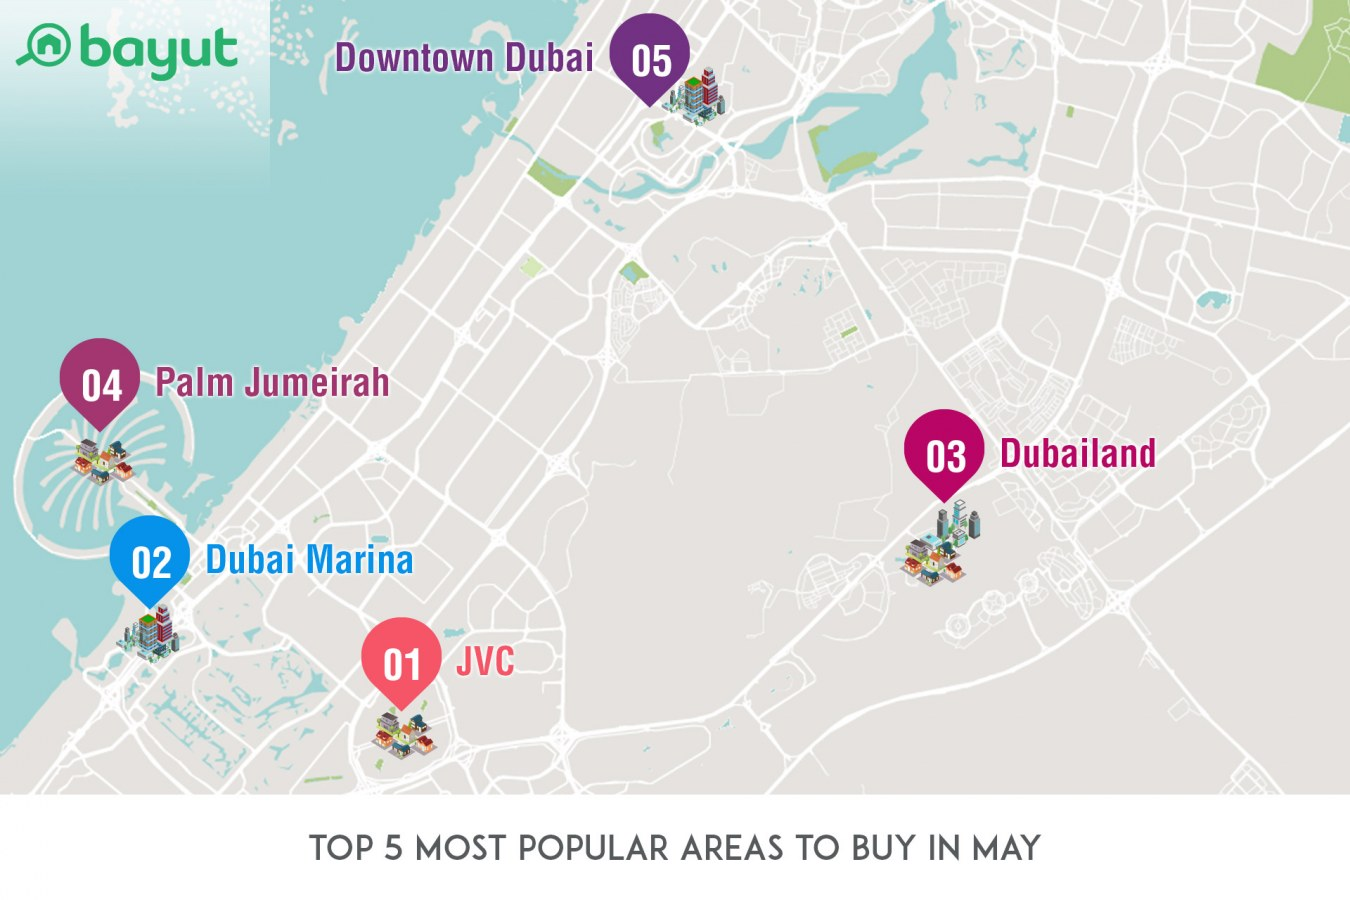 Dubais most popular areas to rent and buy in may with so many glitzy and glamorous apartments for sale in downtown dubai it is no surprise that this area appeared on mays top 5 list of most popular areas gumiabroncs Images